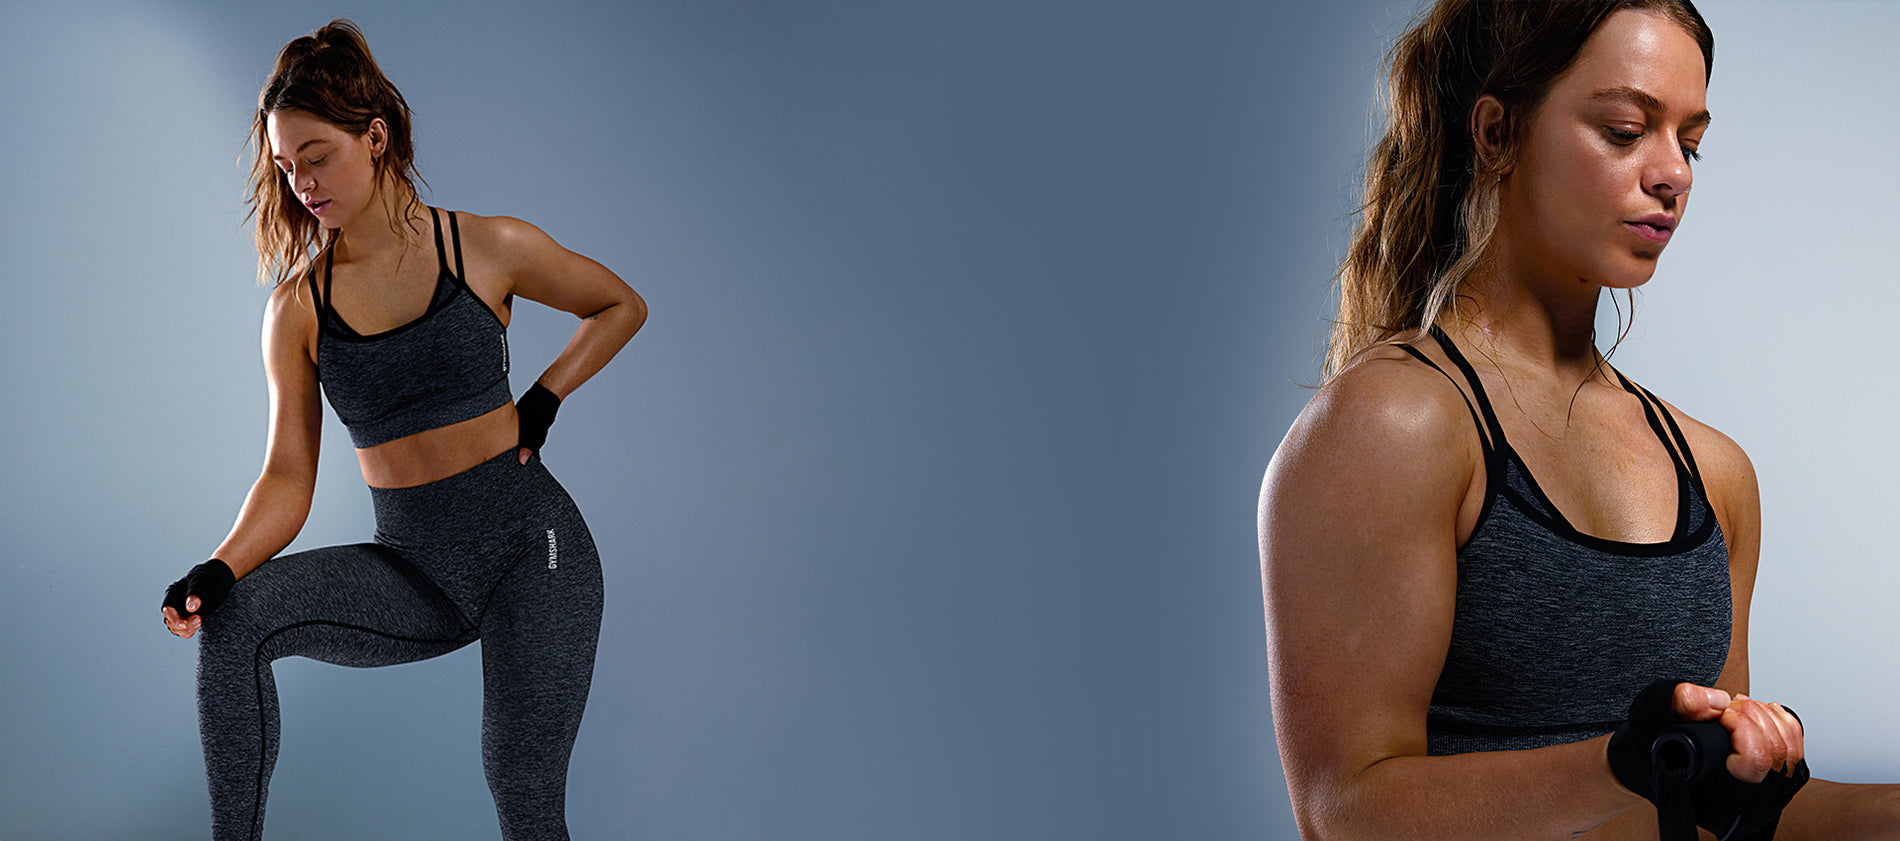 Becca Sills wearing Adapt Marl Sports Bra and Leggings in Black against a blue background